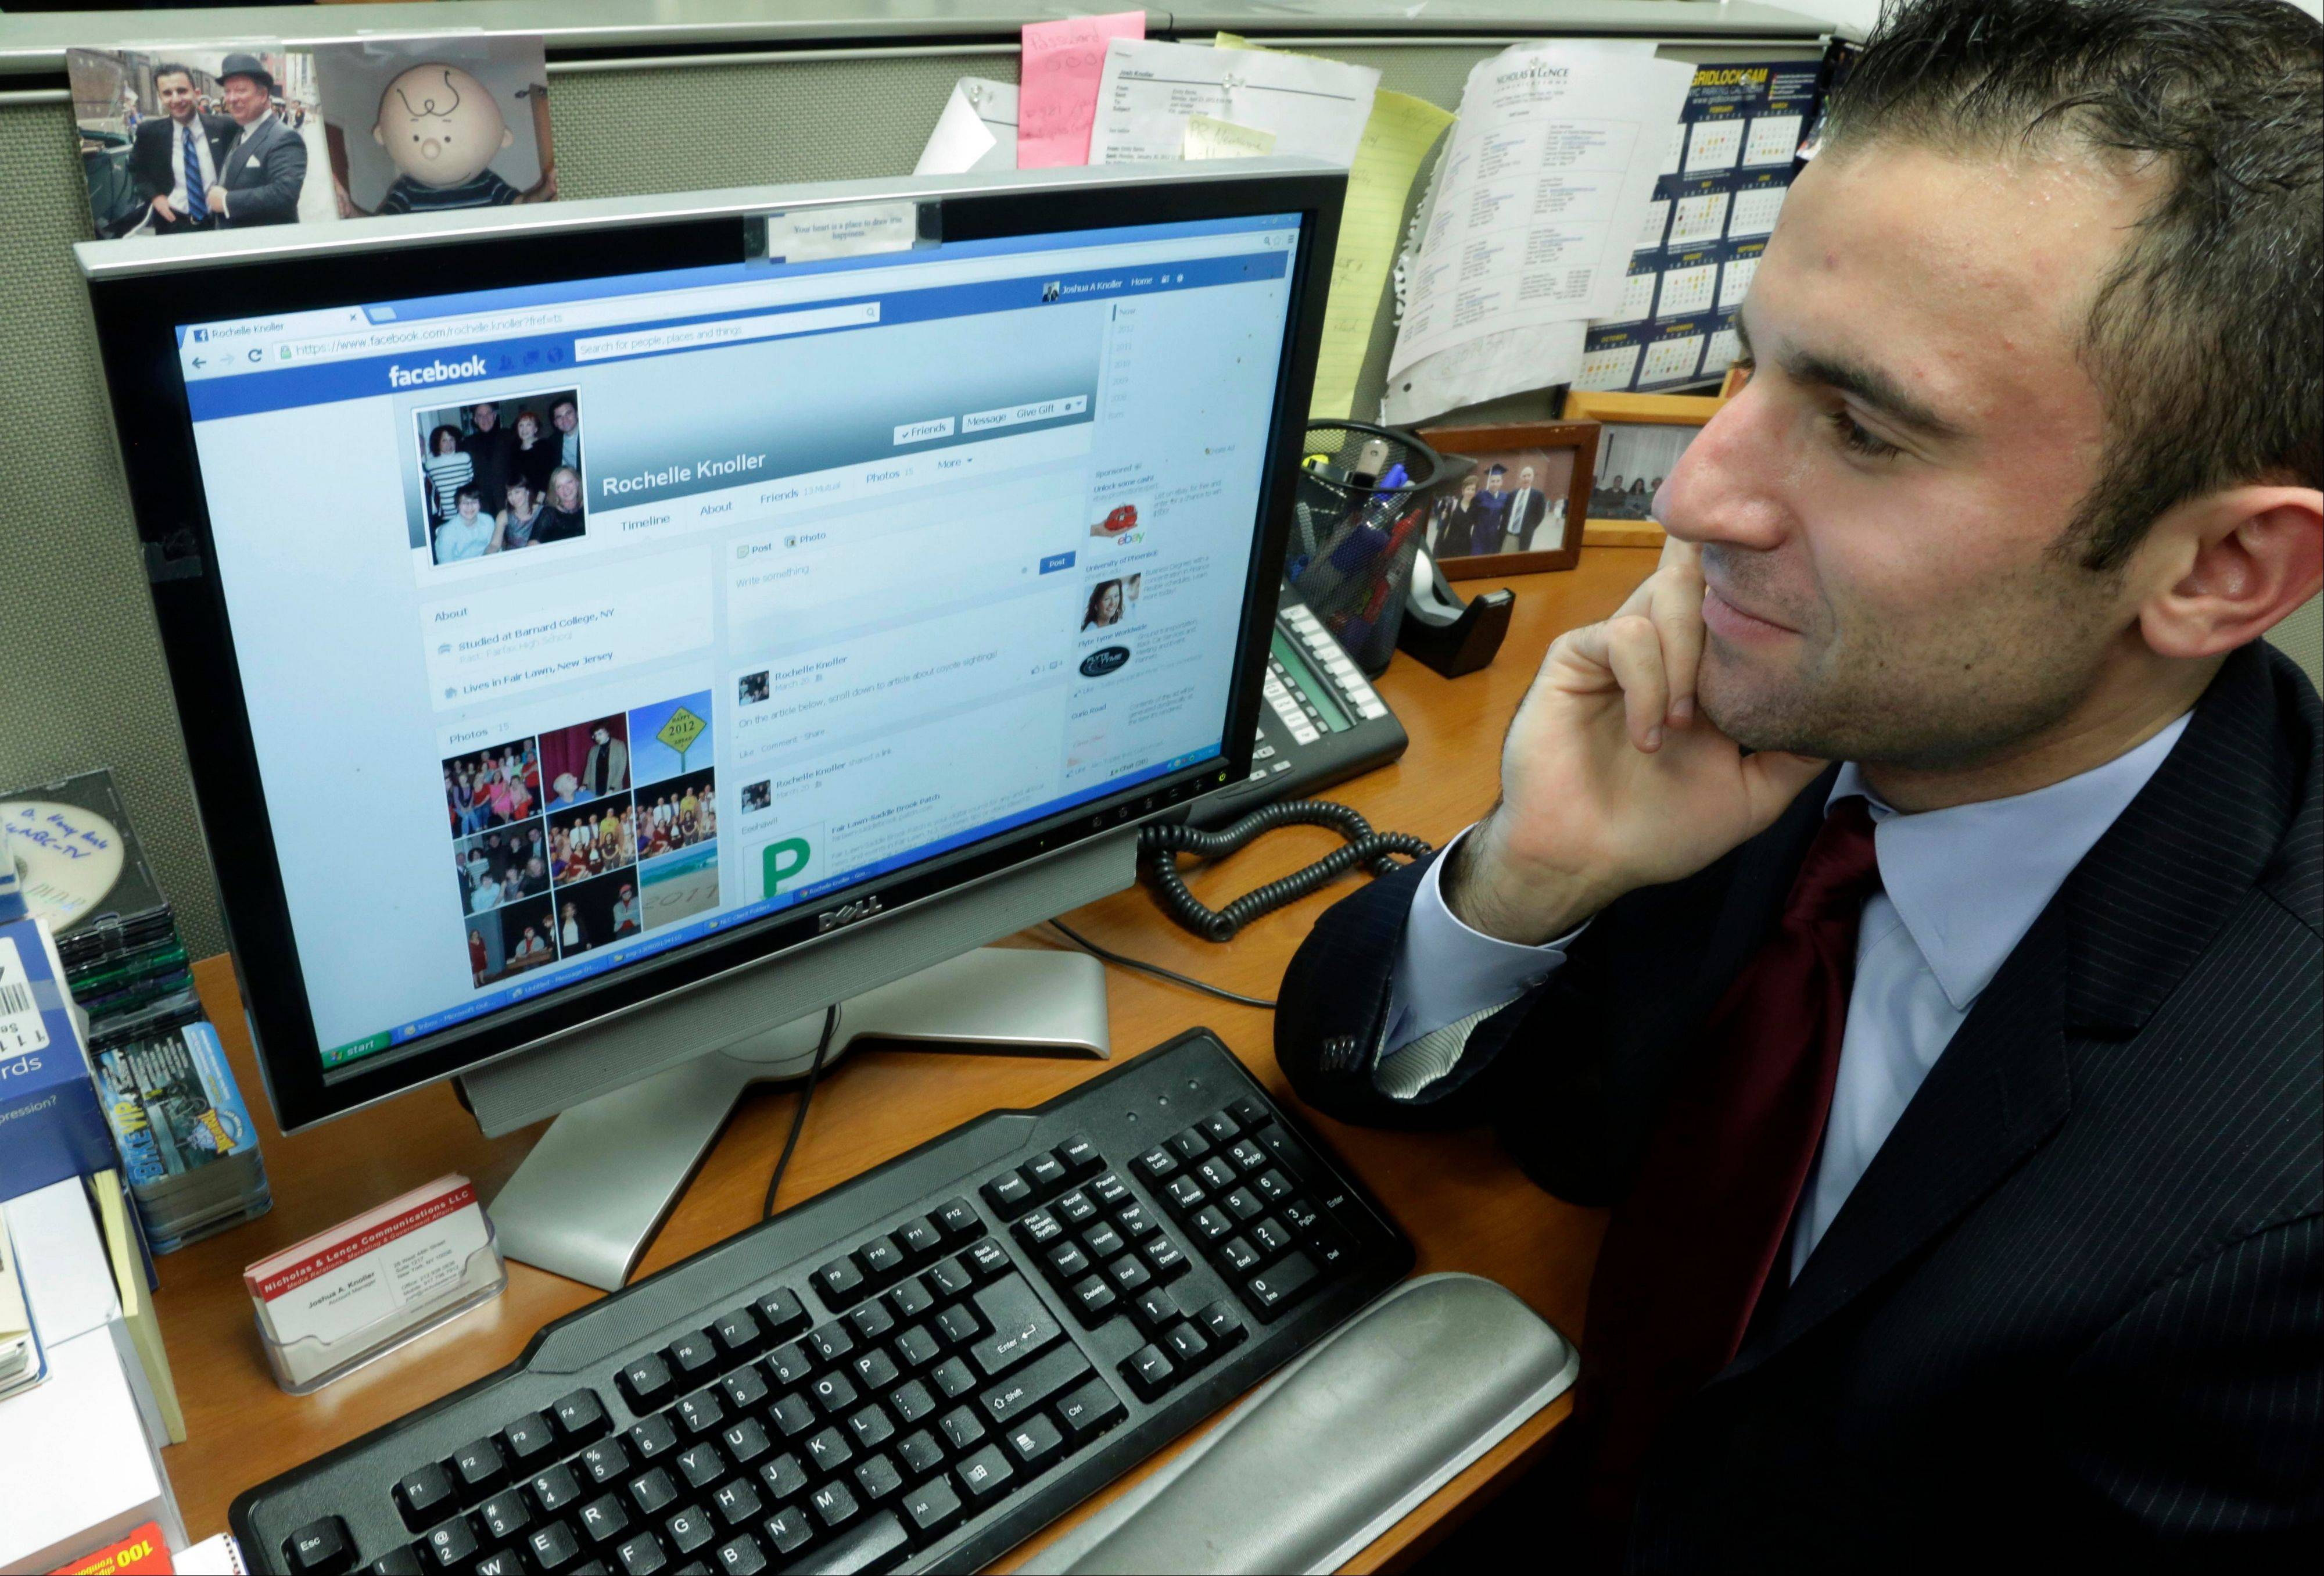 Joshua Knoller, an account manager with Nicholas & Lence Communications, looks at the Facebook page of his mother, Rochelle Knoller of Fair Lawn, N.J., on his office computer, in New York.